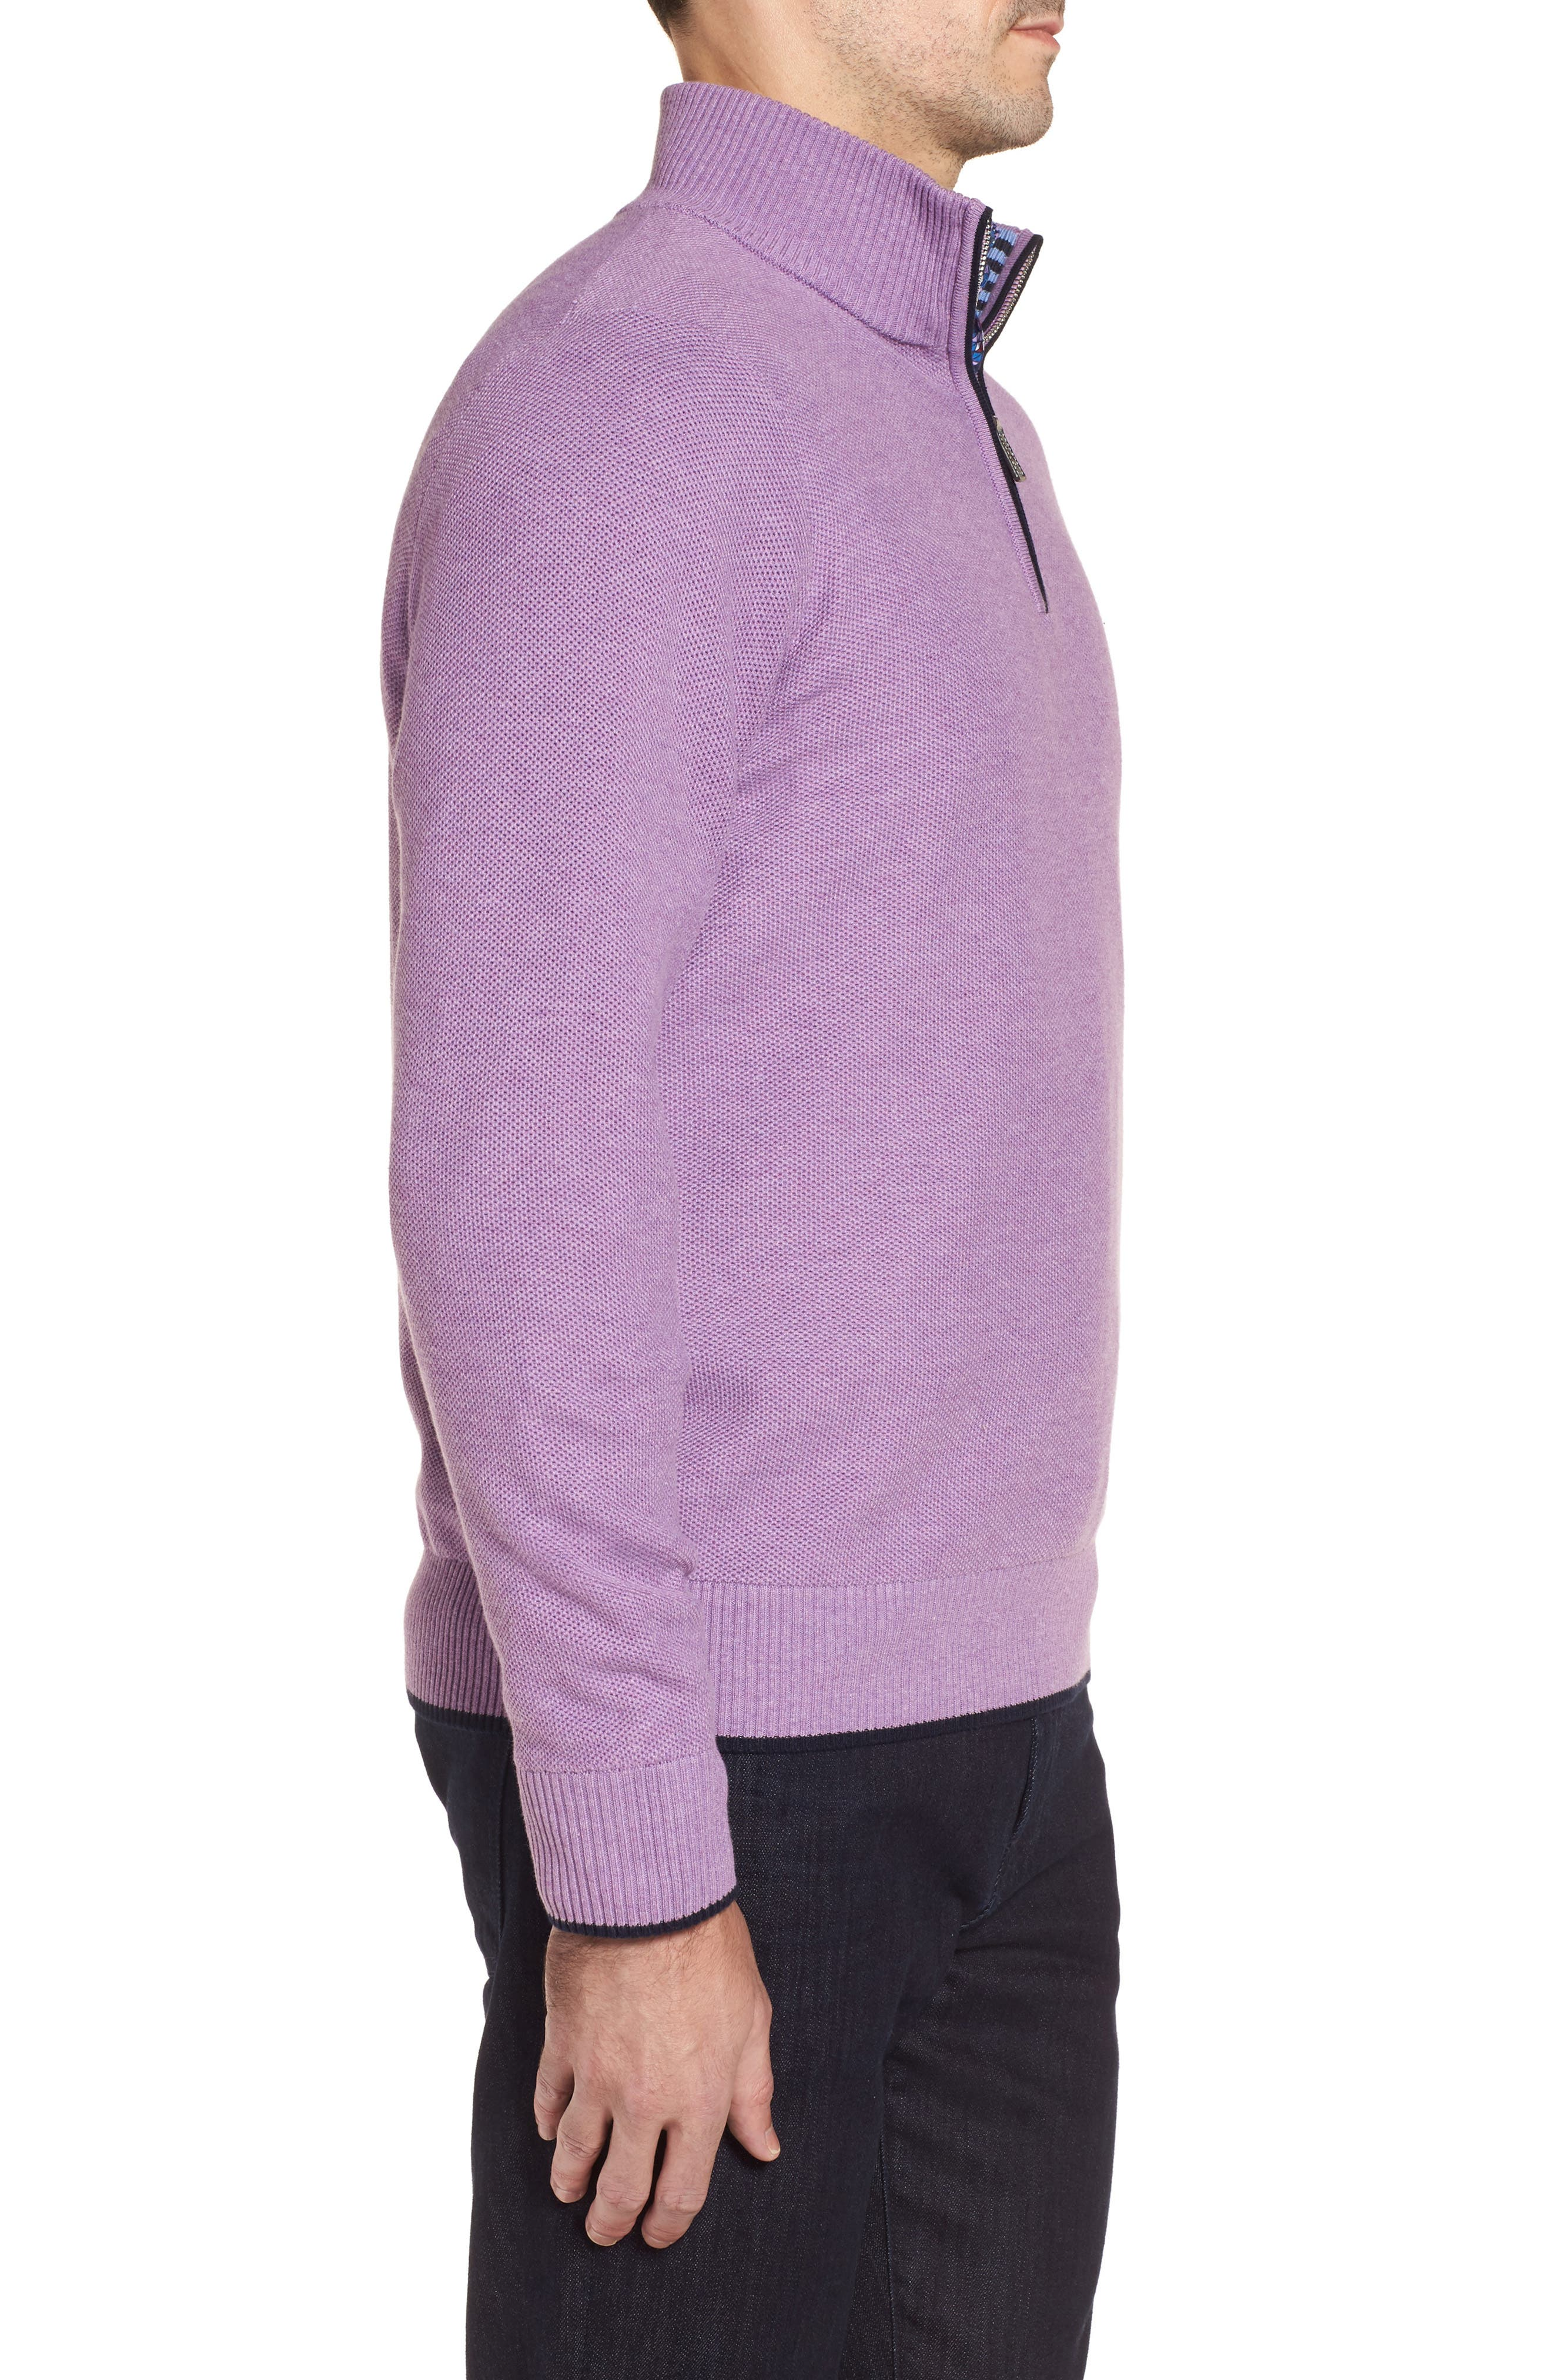 Ossun Tipped Quarter Zip Sweater,                             Alternate thumbnail 3, color,